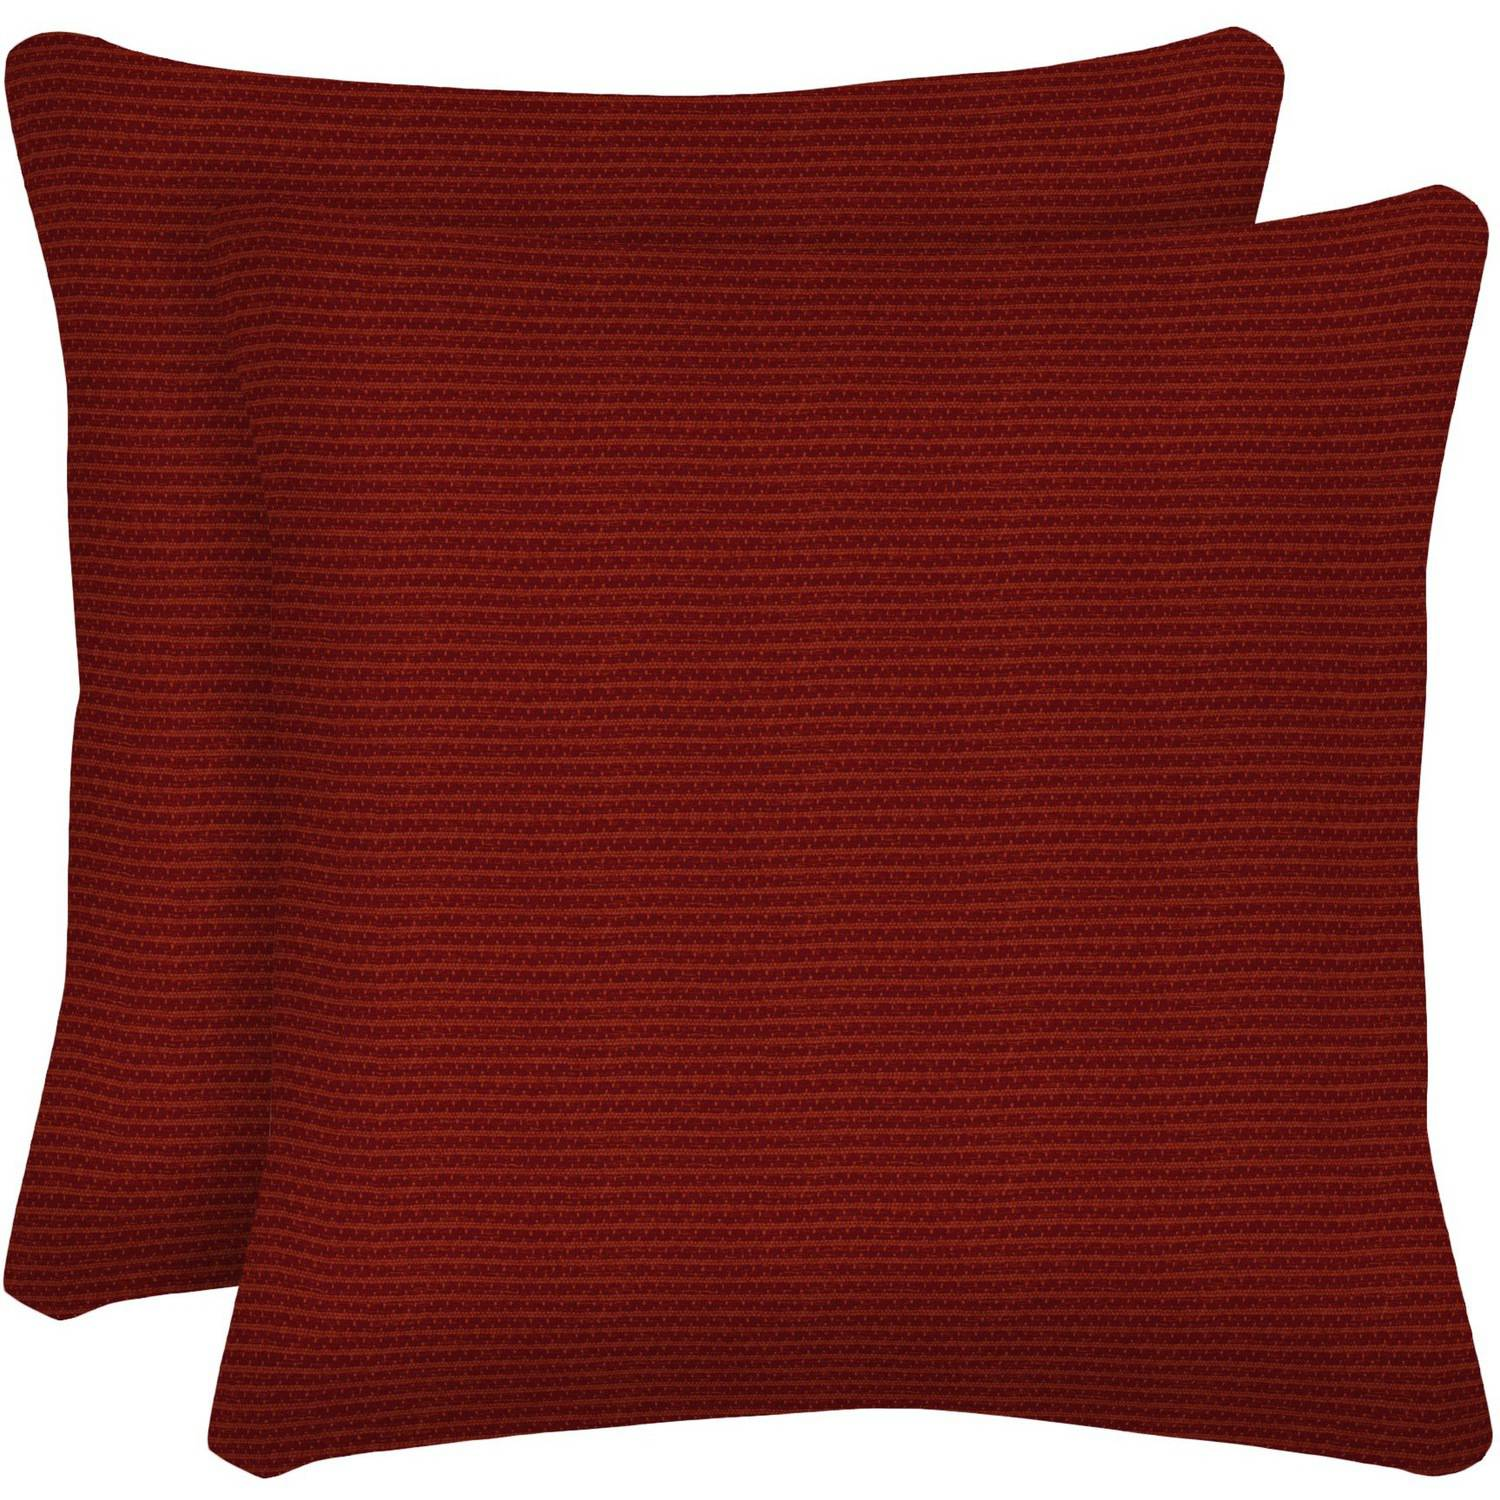 "Arden Outdoors 16"" Square Toss Pillow, Set of 2, Red Rib Woven"